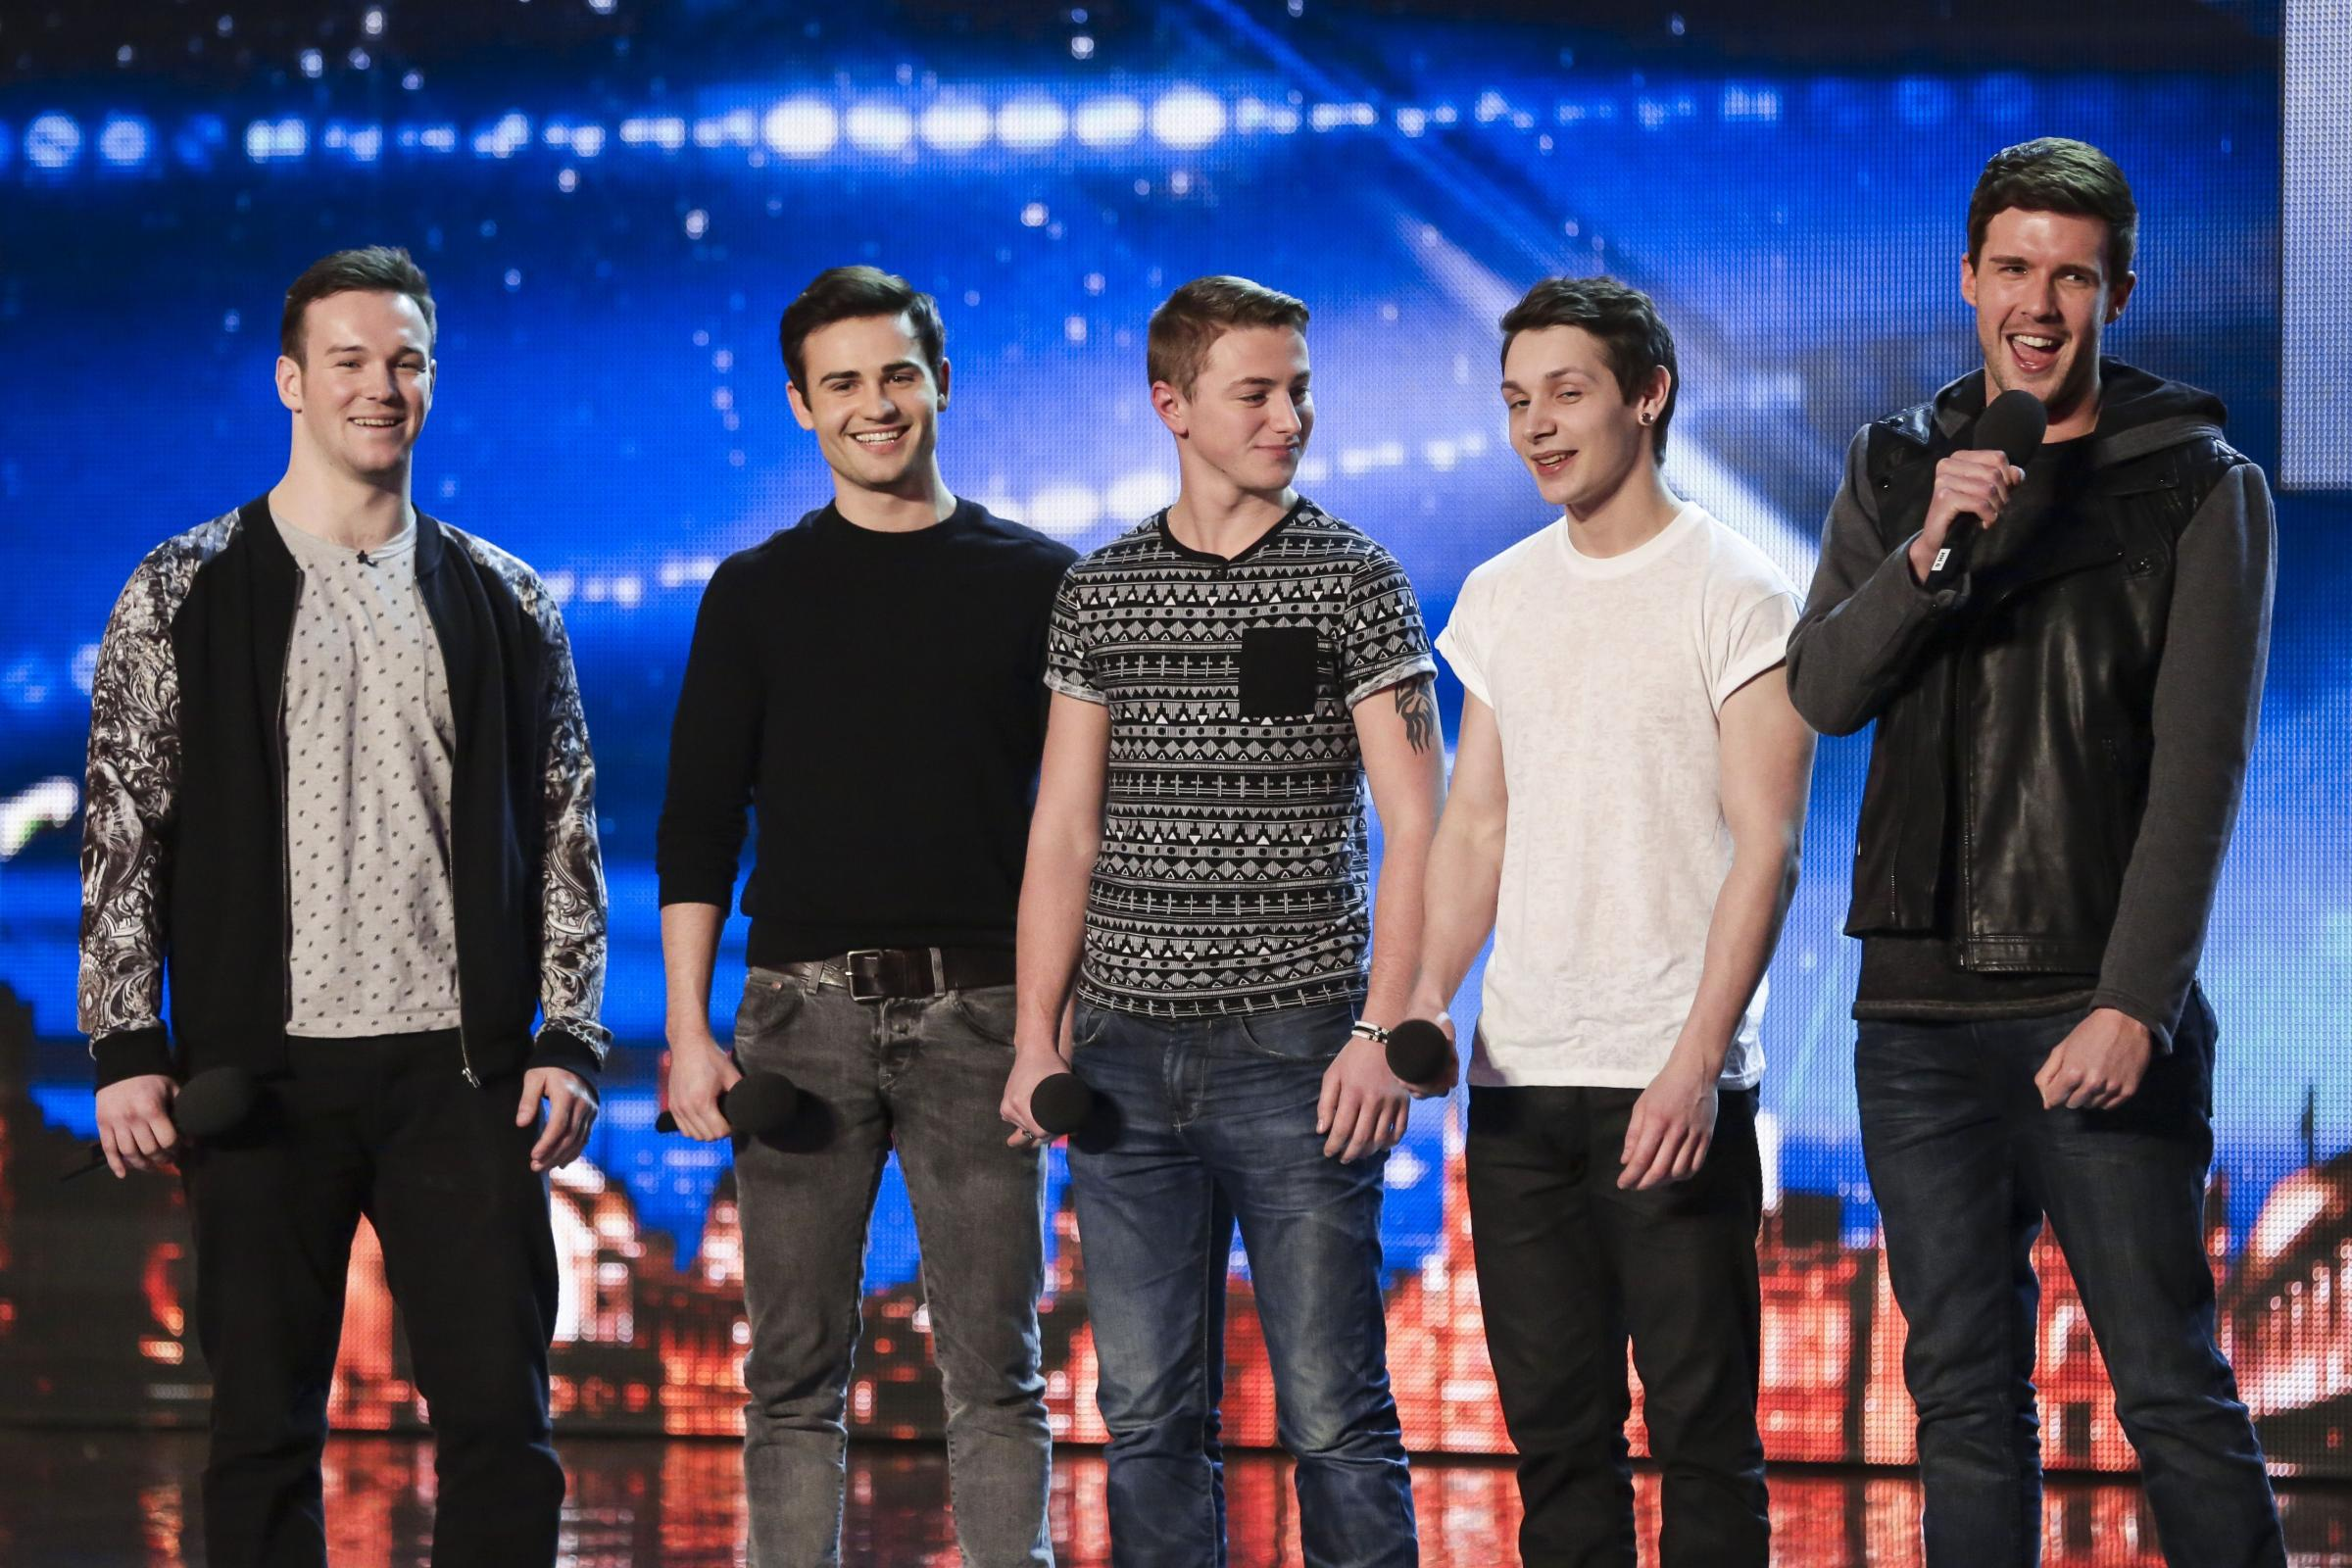 Sussex singer through to Britain's Got Talent final